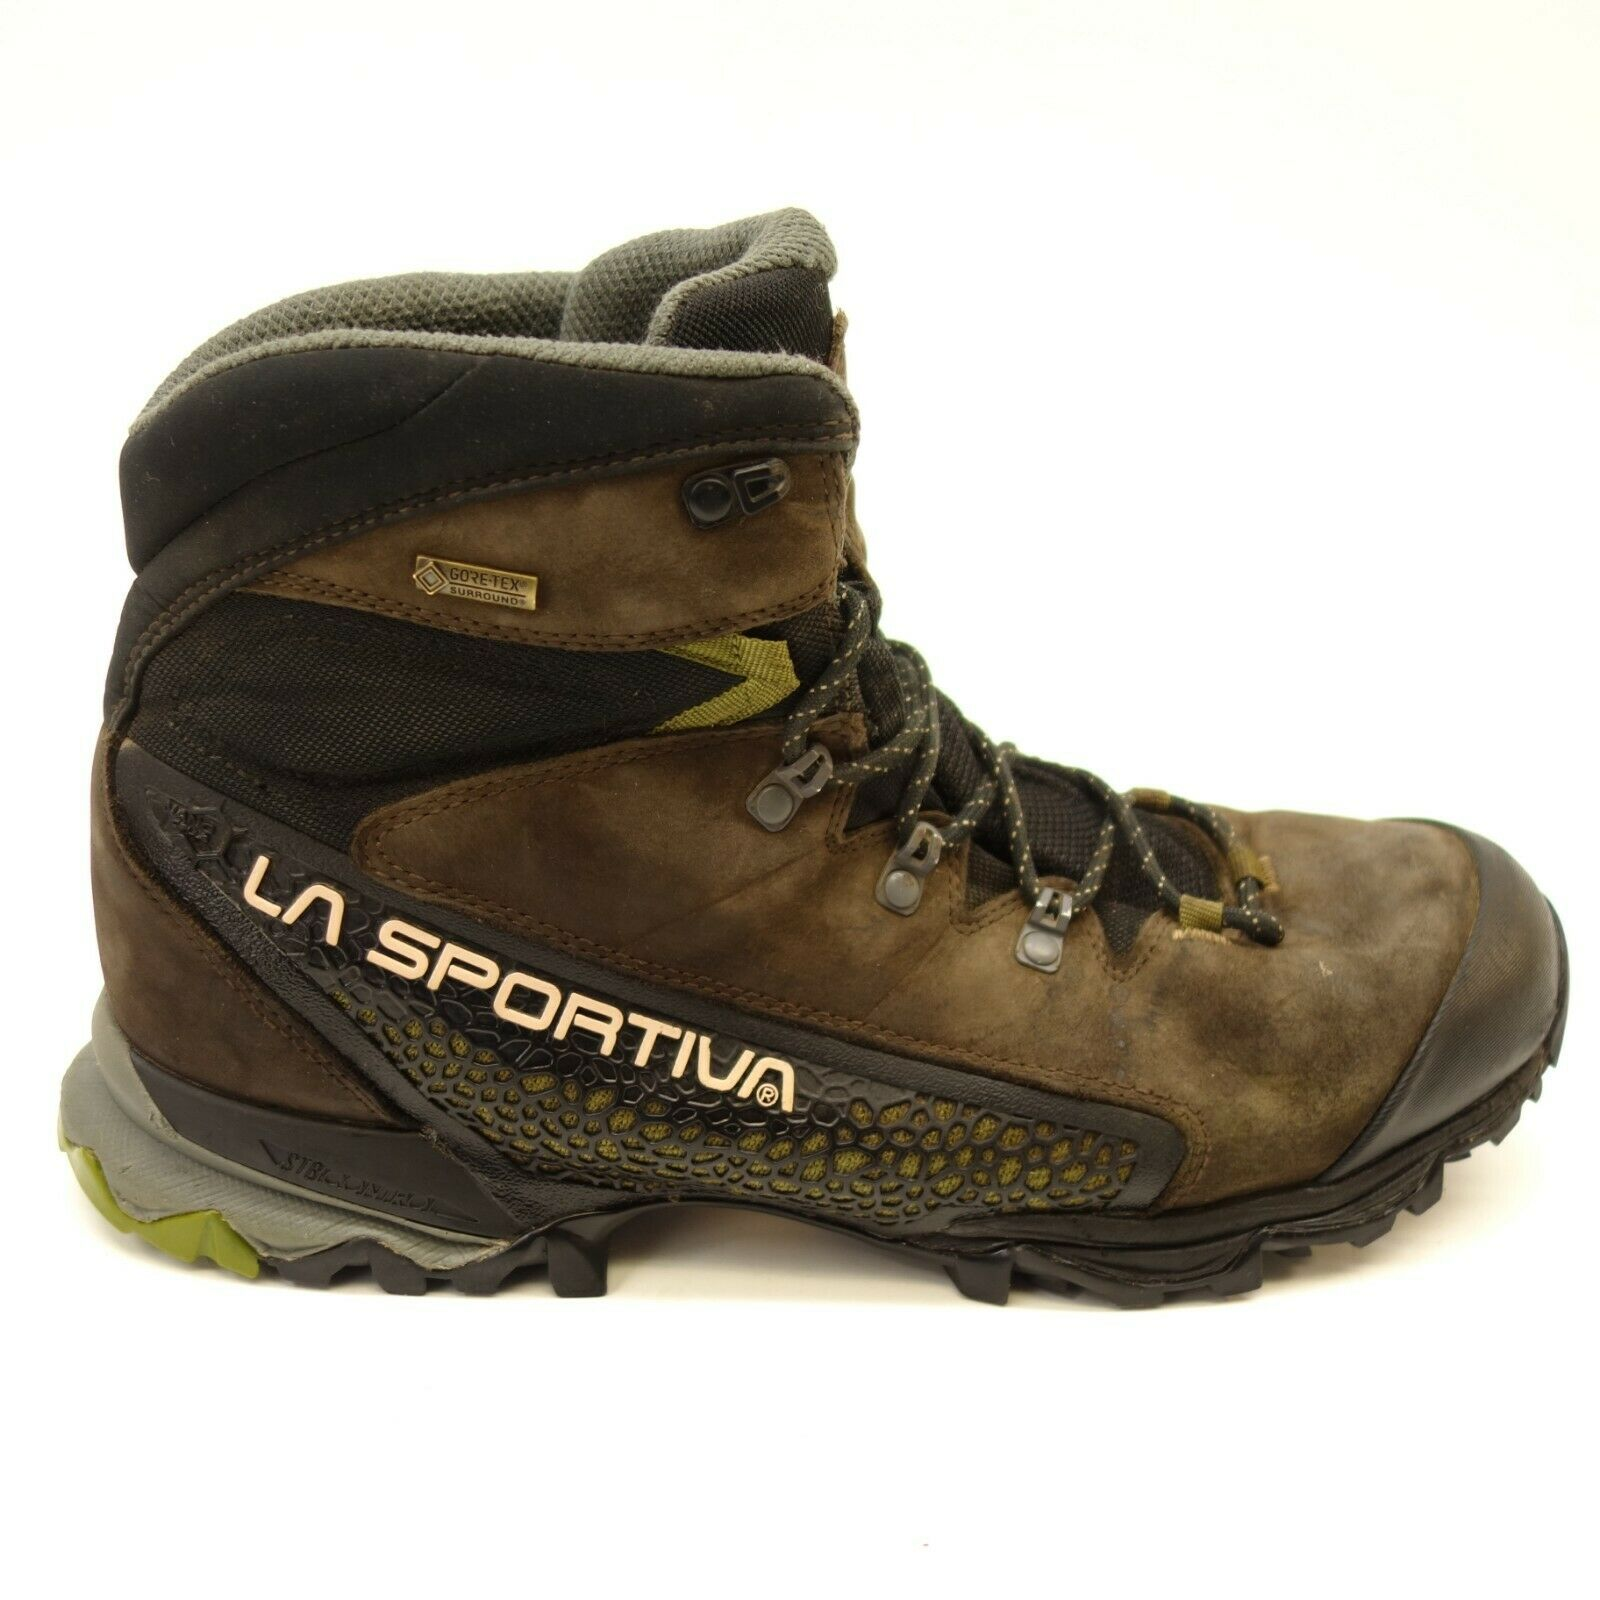 La Sportiva Mens Nucleo High GTX WP Athletic Hiking Boots Size US 12